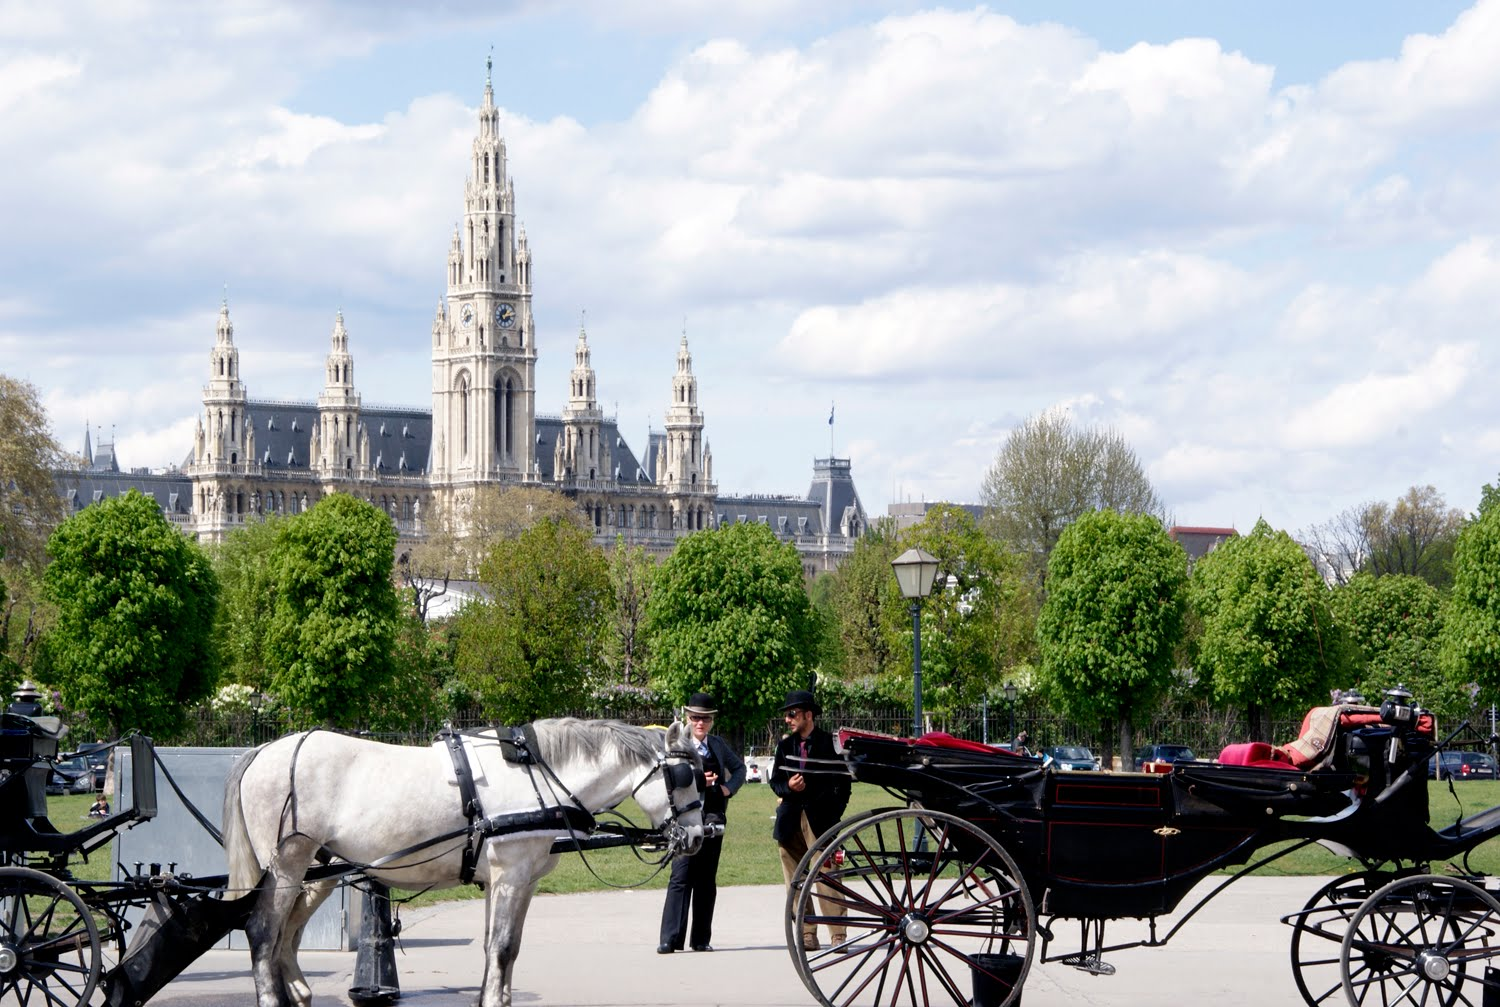 horse carriages of vienna by anitam.com